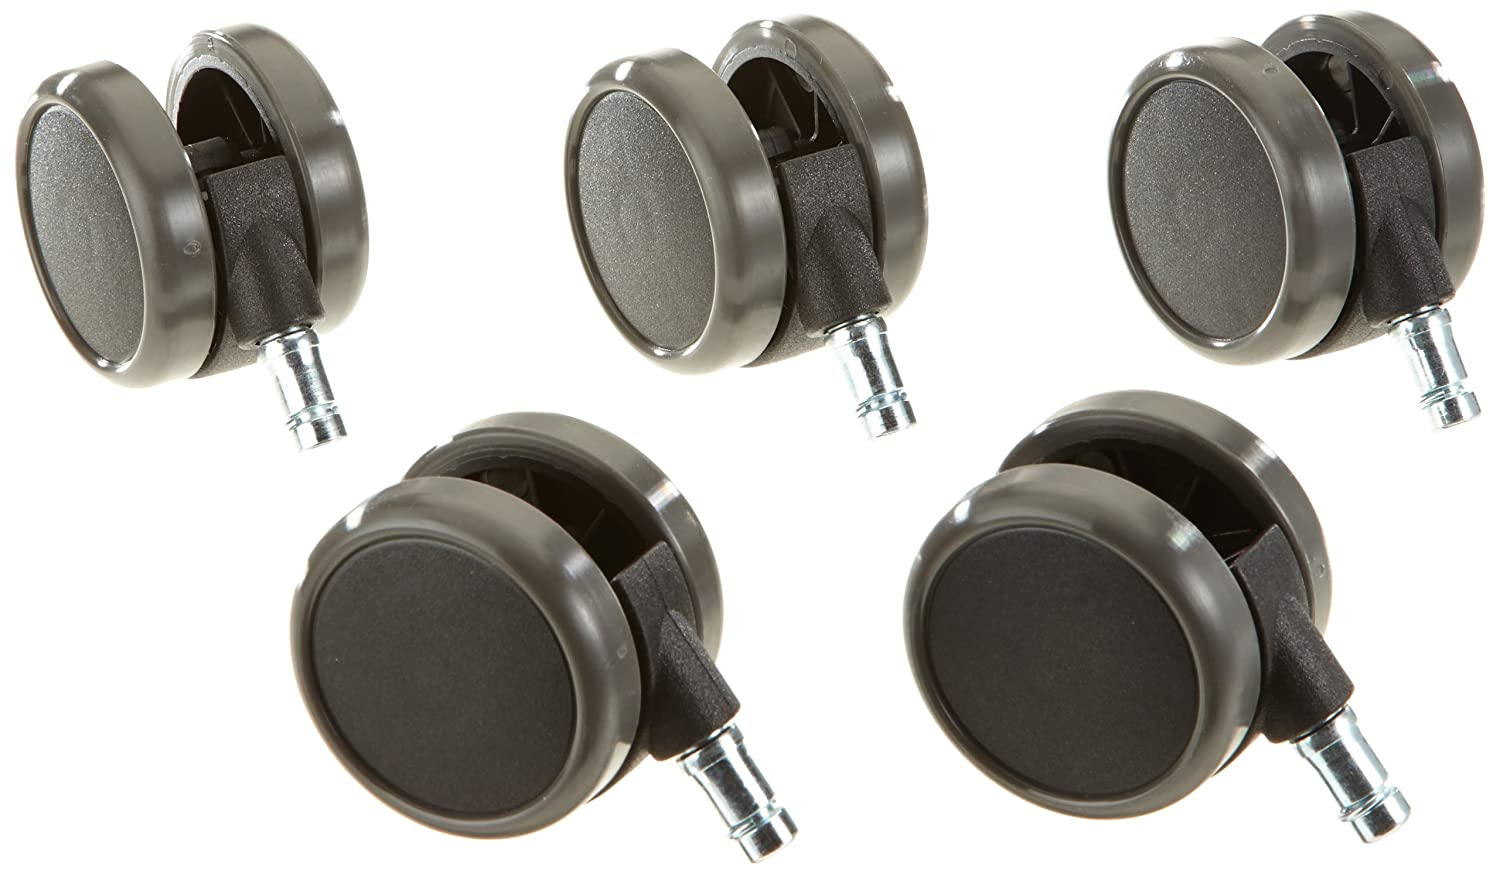 hjh OFFICE, 619010, Castors, Wheels for office, executive chairs, ROLO, black, , Set of 5 x special castors for hard floors 11 mm pin, 65 mm diameter wheel e.g. parquet, laminate, tile or stone floor, braked saftey, casters